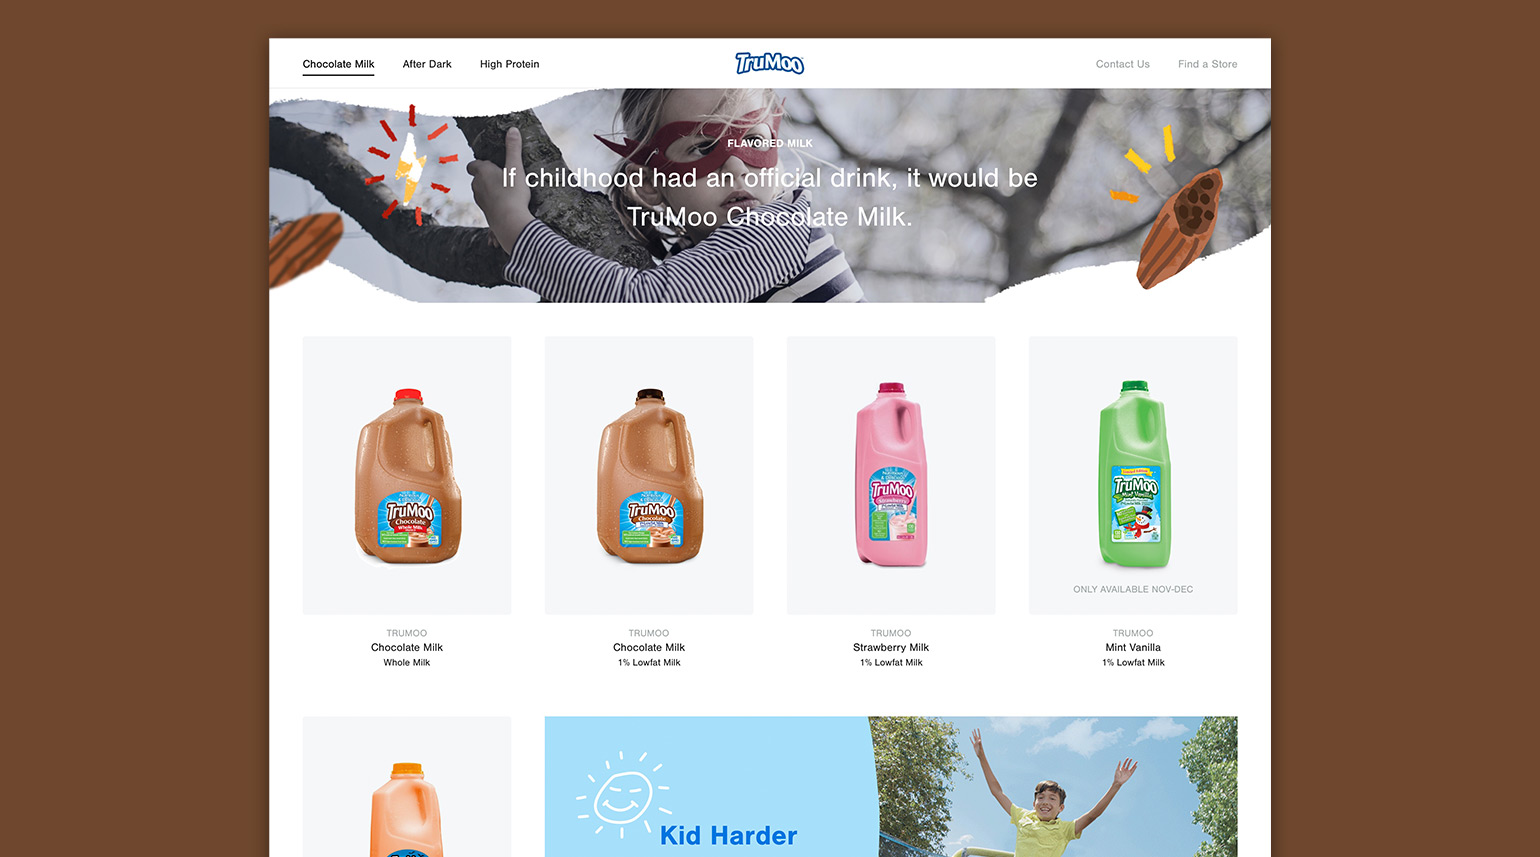 New product page design featuring all TruMoo products.